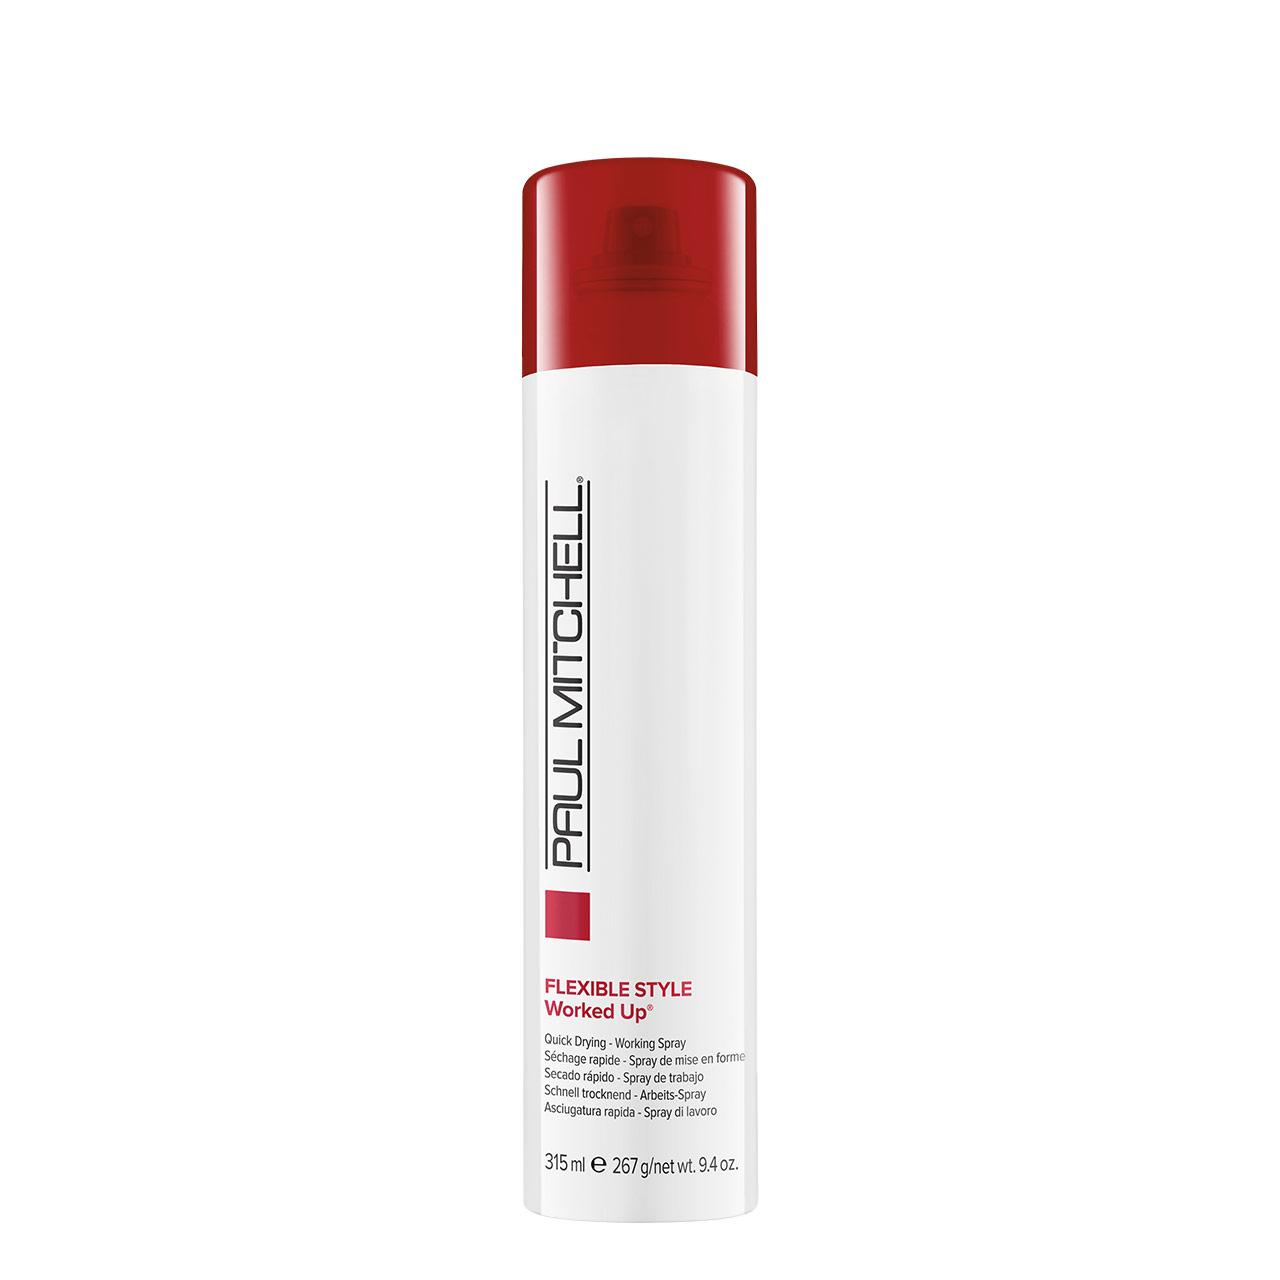 Paul Mitchell Express Style Worked Up - 315ml Spray Finalizador